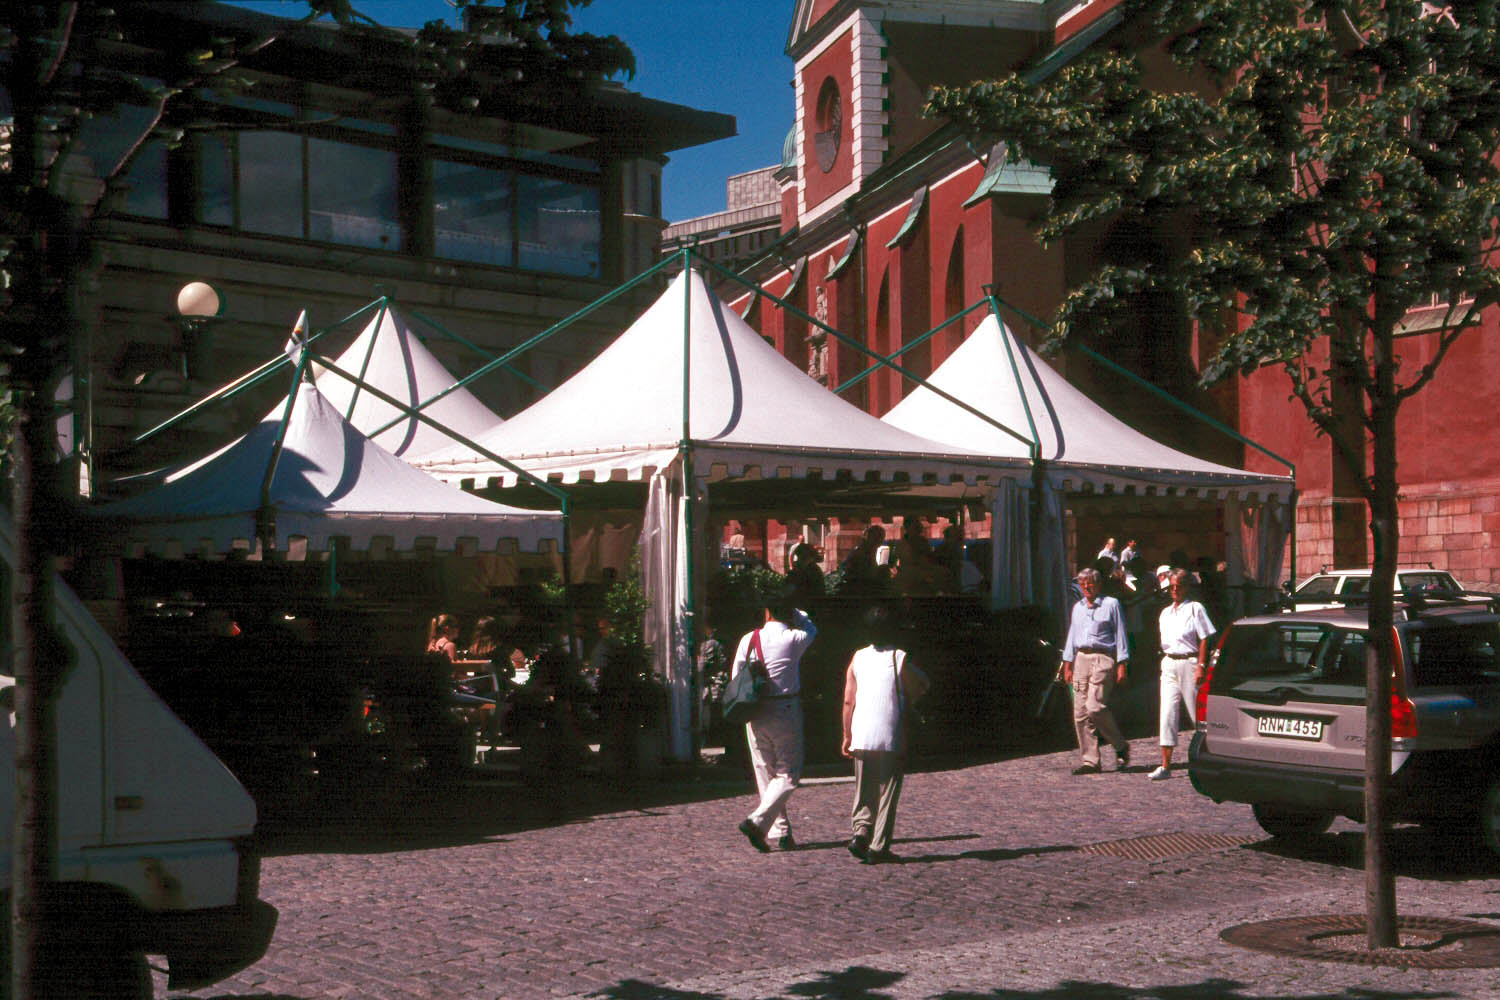 Las Vegas has recently used a tent to create an environment covering their  main street.  & Tents u0026 Awnings